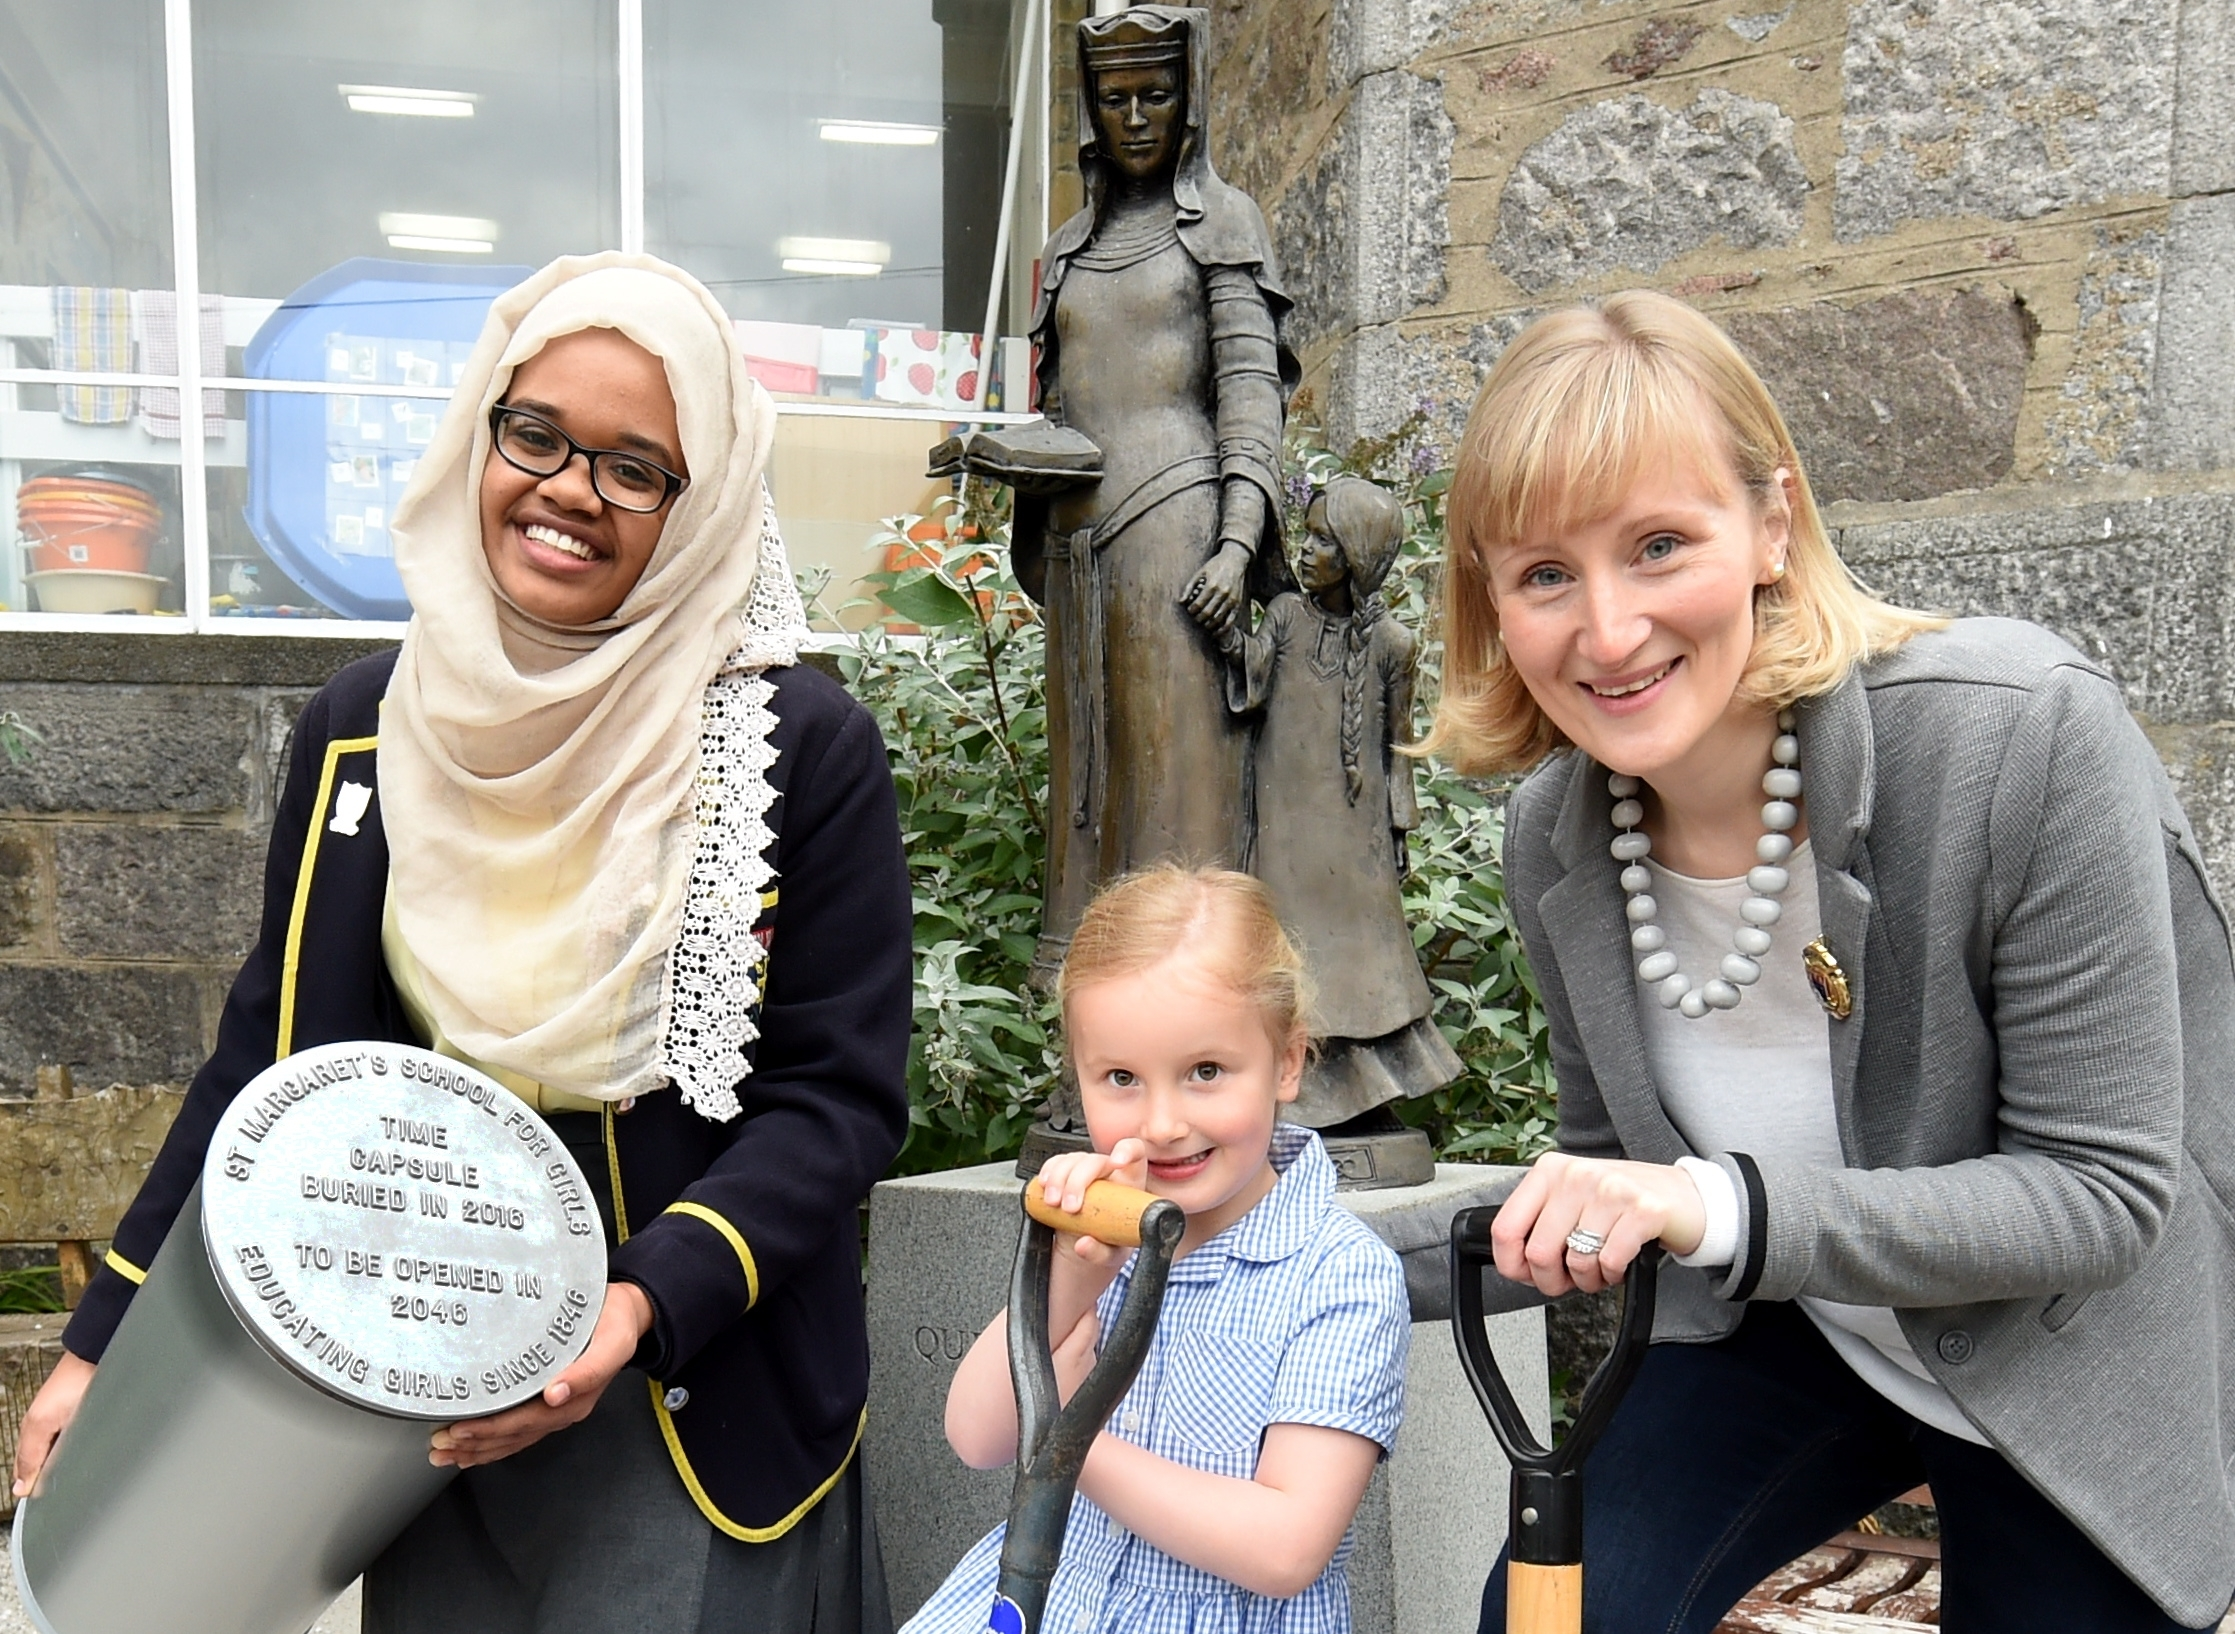 Halima Elyas, head girl, Emily Littlejohn, 1st year pupil and Fiona Littlejohn, former pupil president. Picture by Jim Irvine.